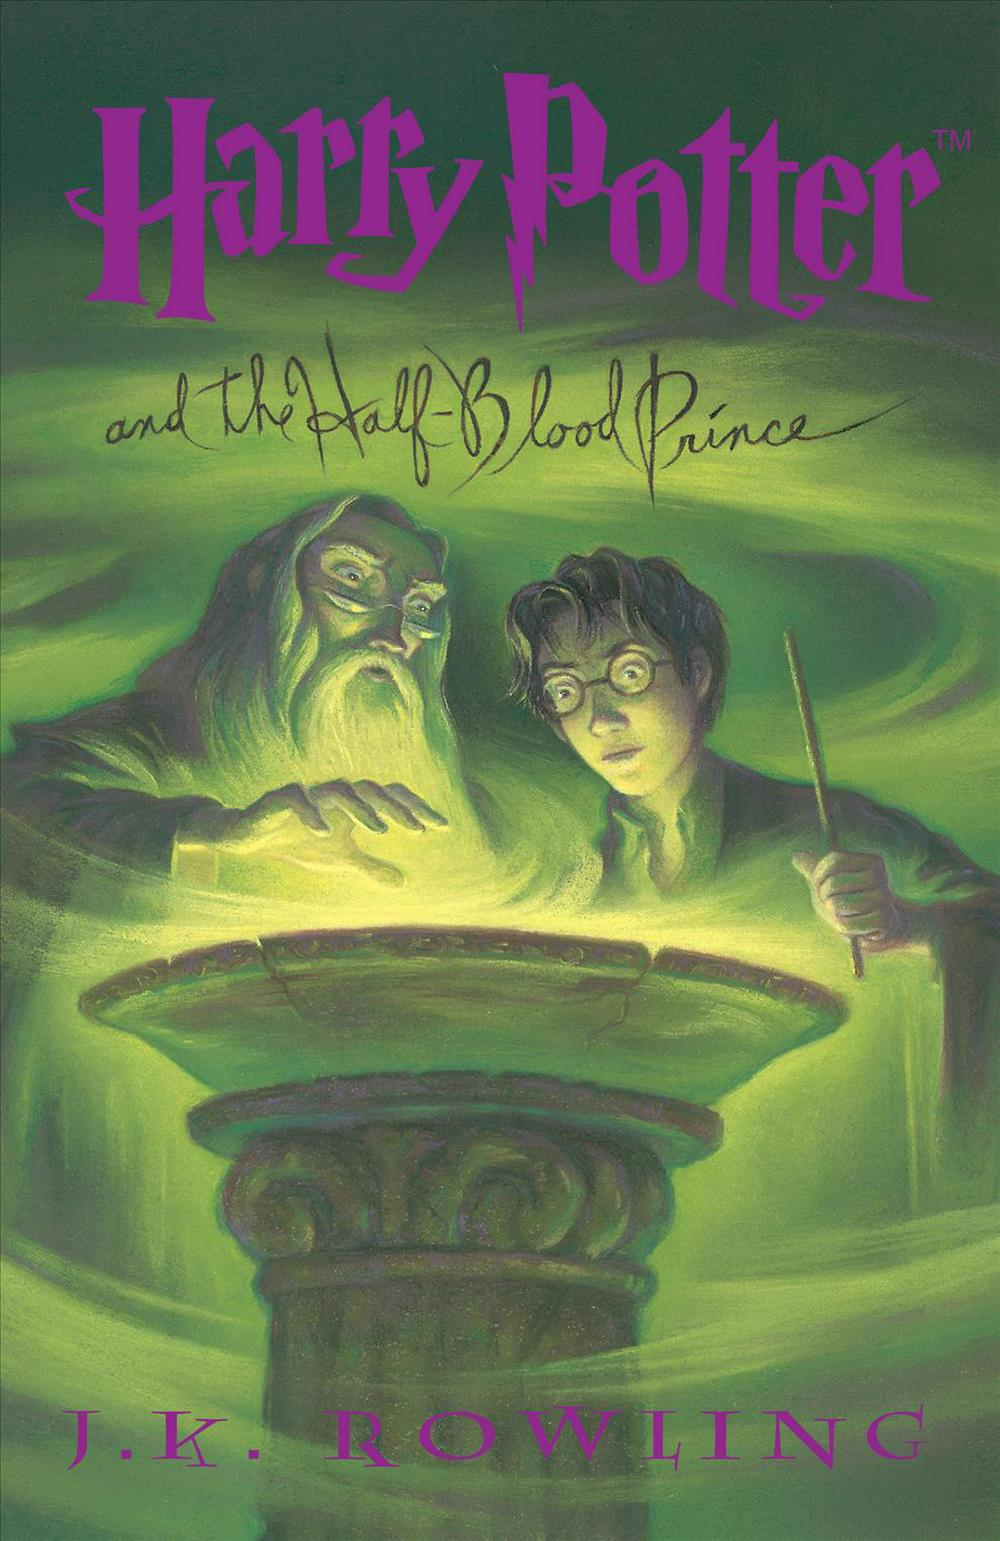 Harry Potter and the Half-Blood Prince by J K Rowling, ISBN: 9781594132216